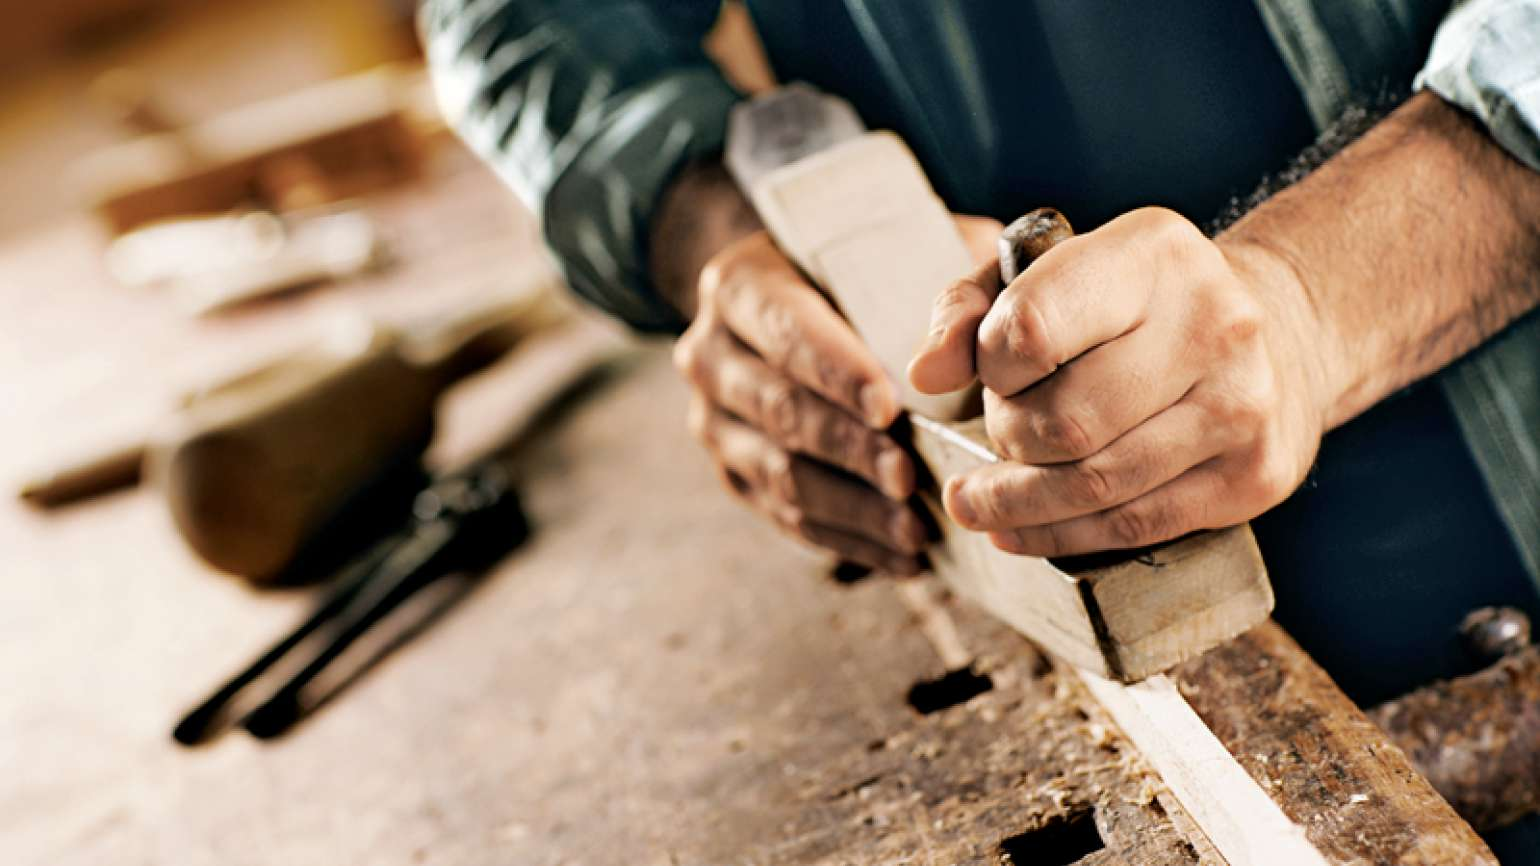 A man's hands working with wood on a workbench